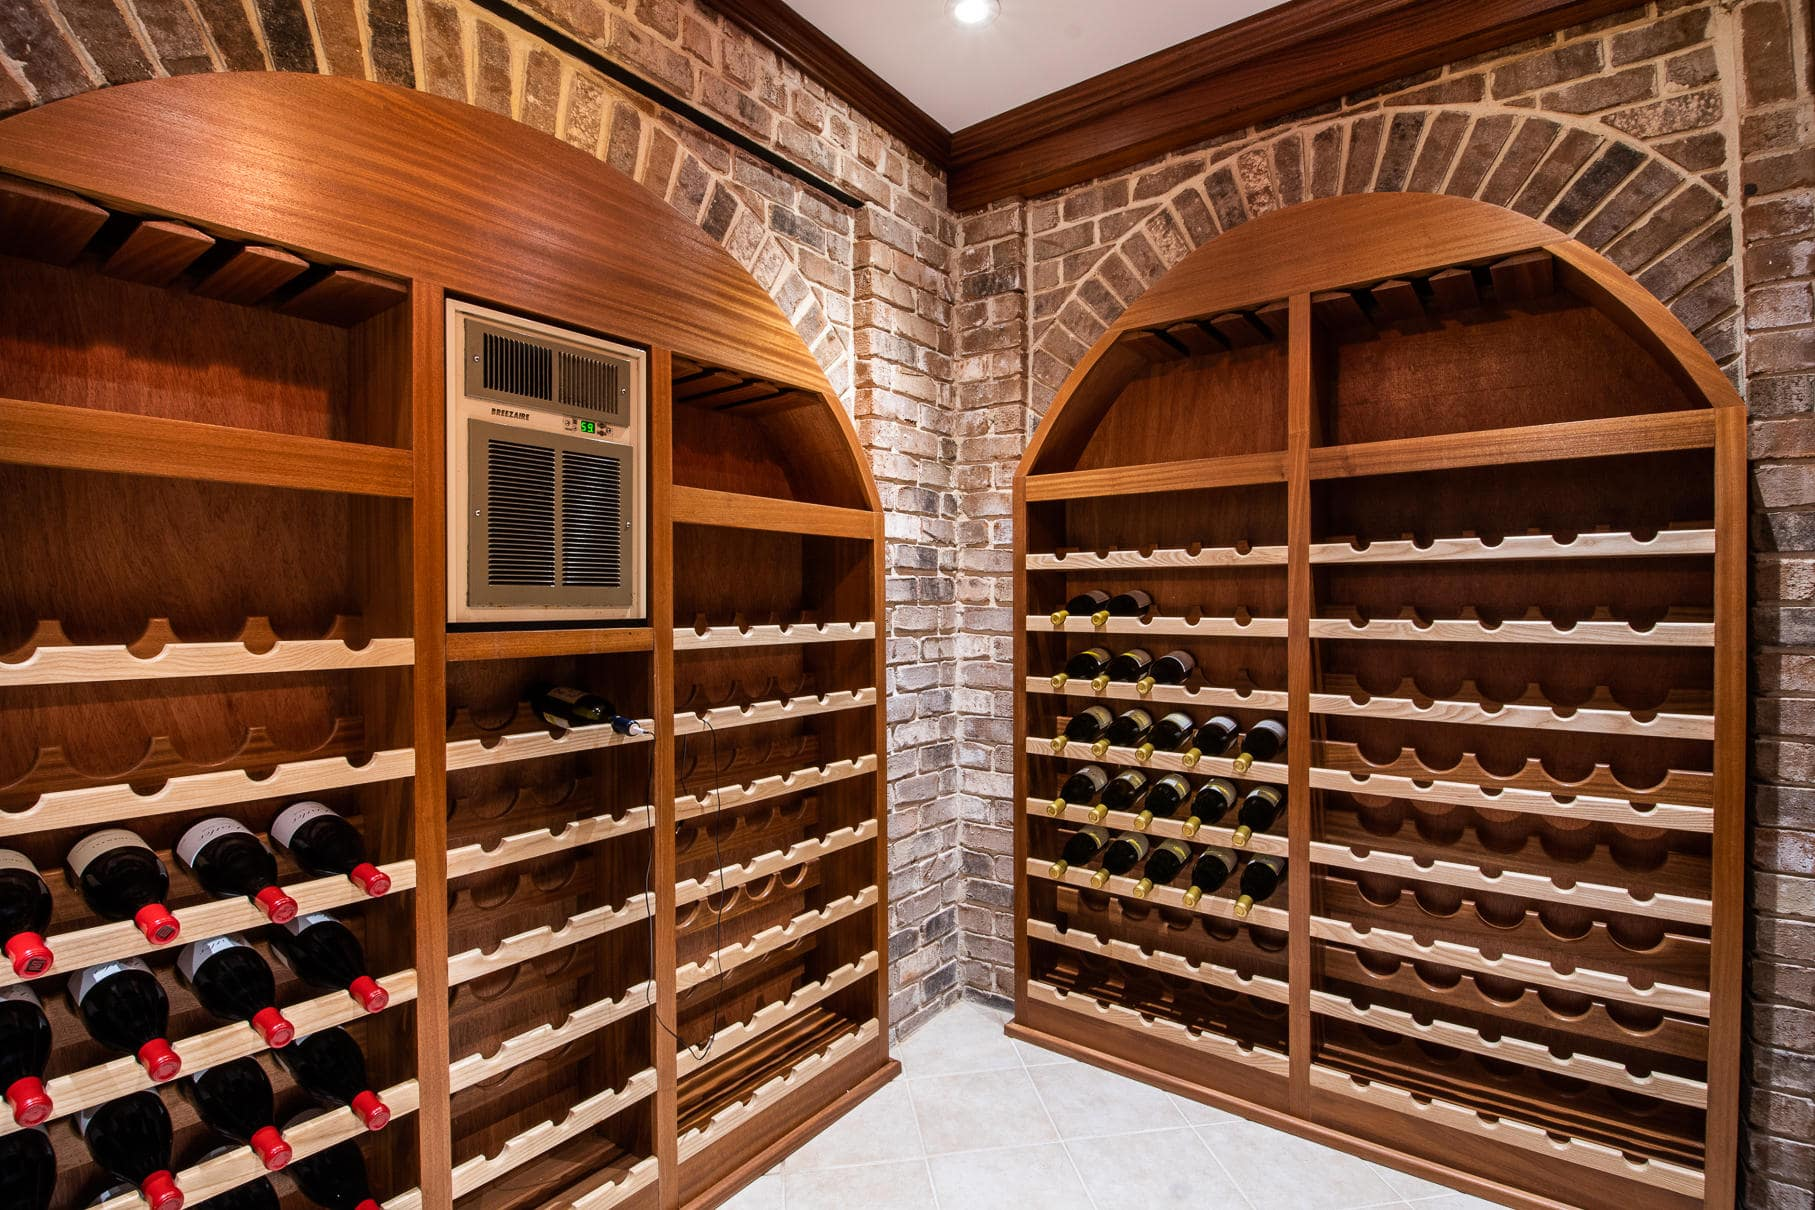 Breezaire WKSL Split System Wine Cellar